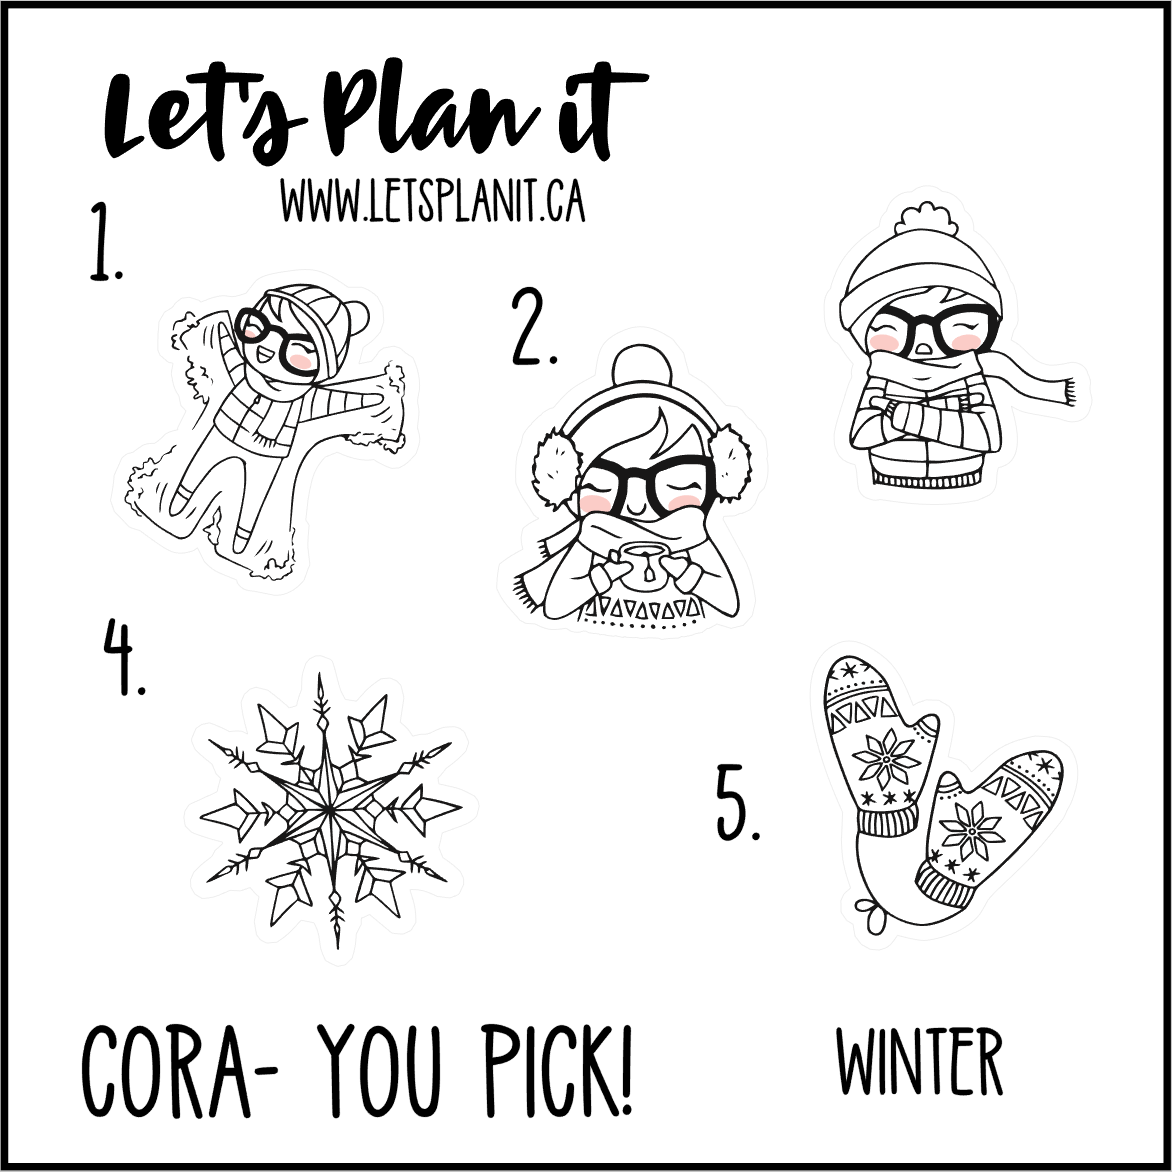 Cora-u-pick- Winter